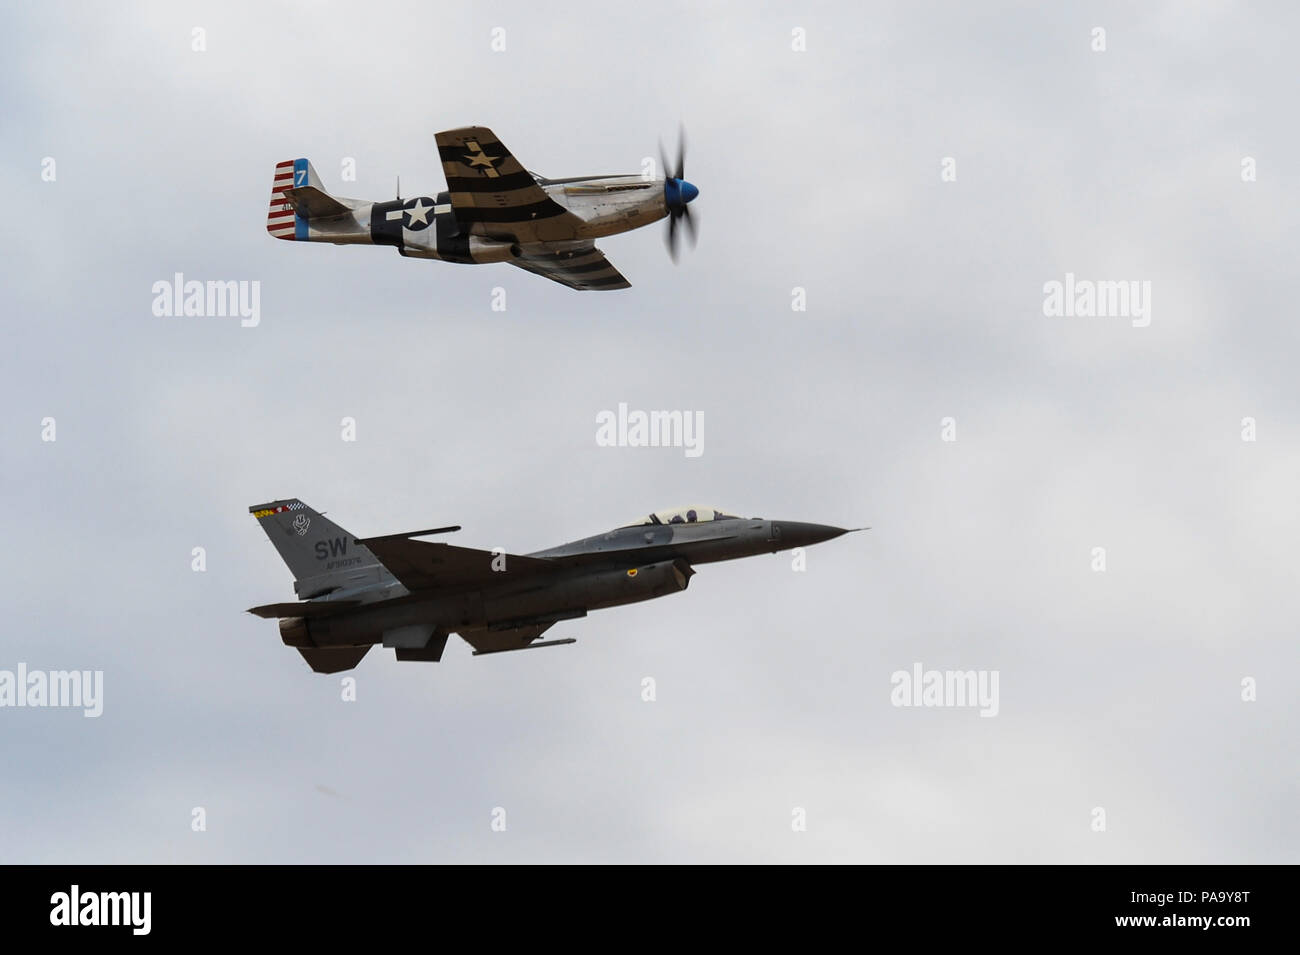 A P-51 Mustang and an F-16C Fighting Falcon fly in formation together during the 2016 Heritage Flight Training and Certification Course at Davis-Monthan Air Force Base, Ariz., March 6, 2016. Established in 1997, the HFTCC certifies civilian pilots of historic military aircraft and U.S. Air Force pilots to fly in formation together during the upcoming air show season. (U.S. Air Force photo by Airman 1st Class Mya M. Crosby/Released) - Stock Image